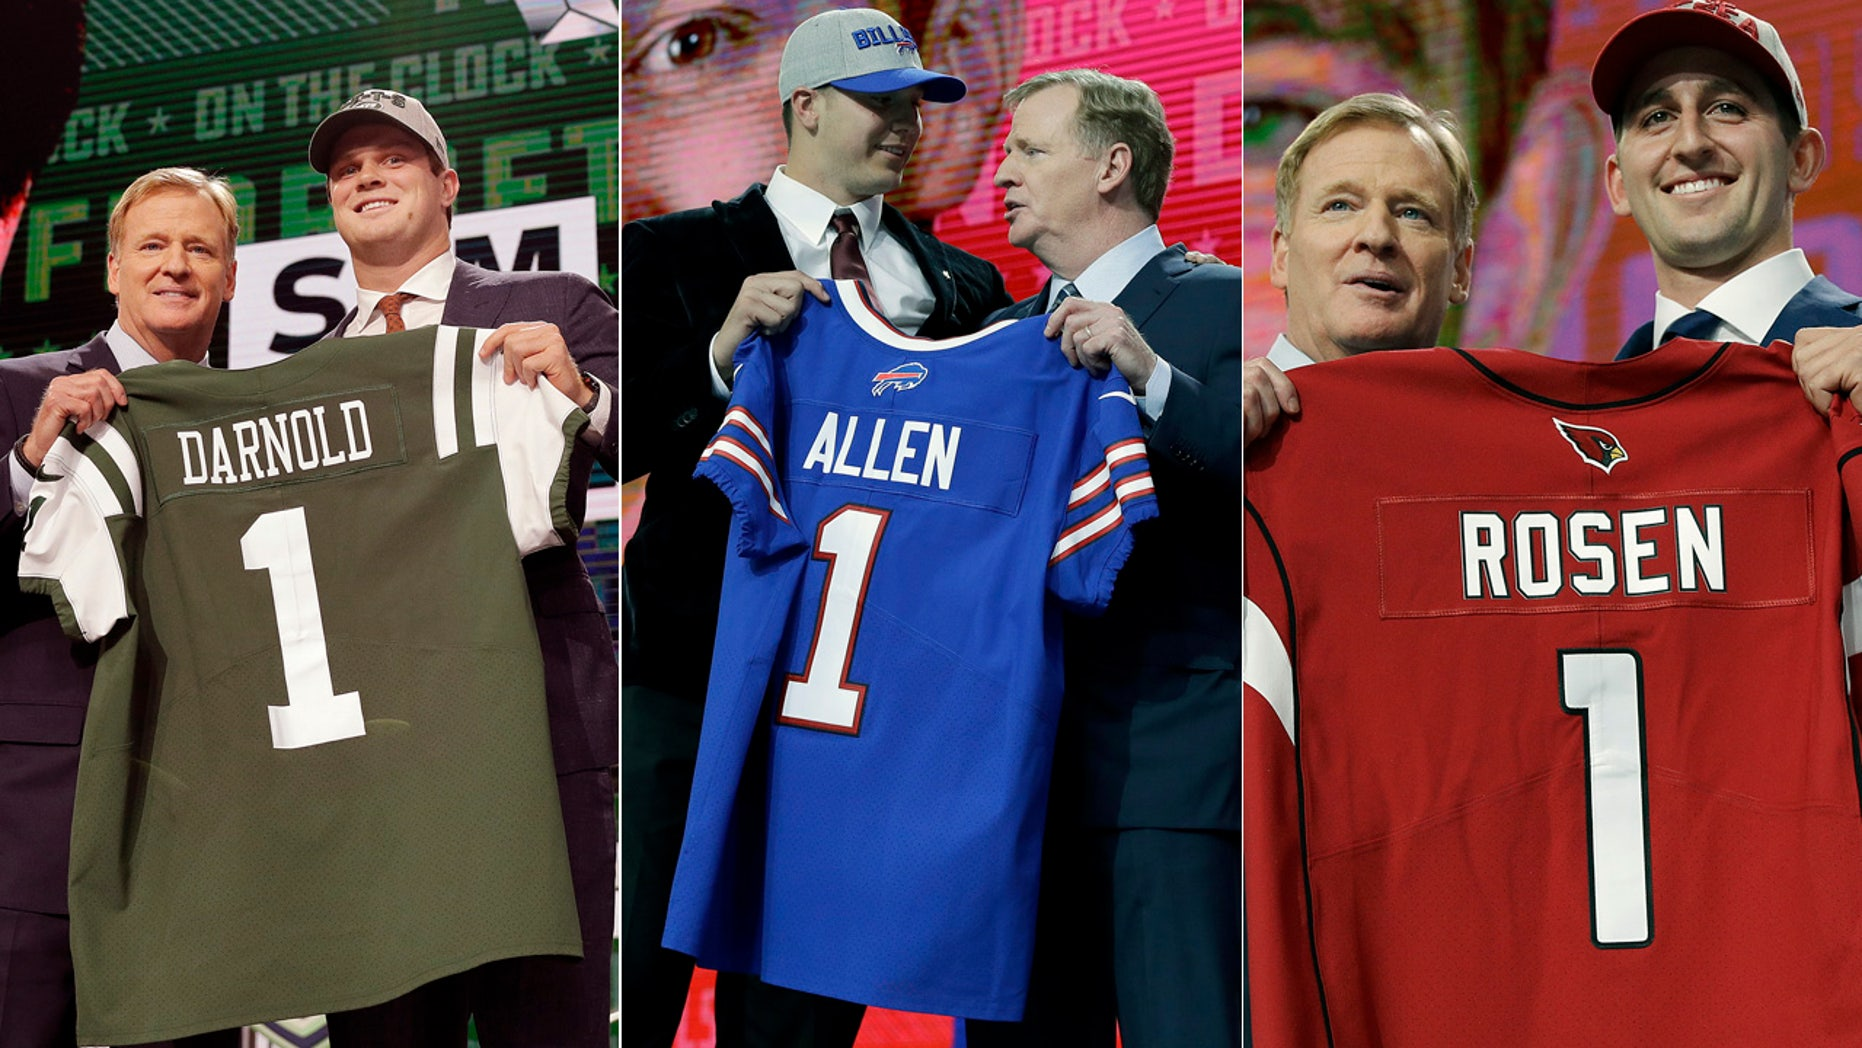 From left: Sam Darnold, Josh Allen and Josh Rosen were drafted by the Jets, Bills and Cardinals in Thursday's NFL Draft.